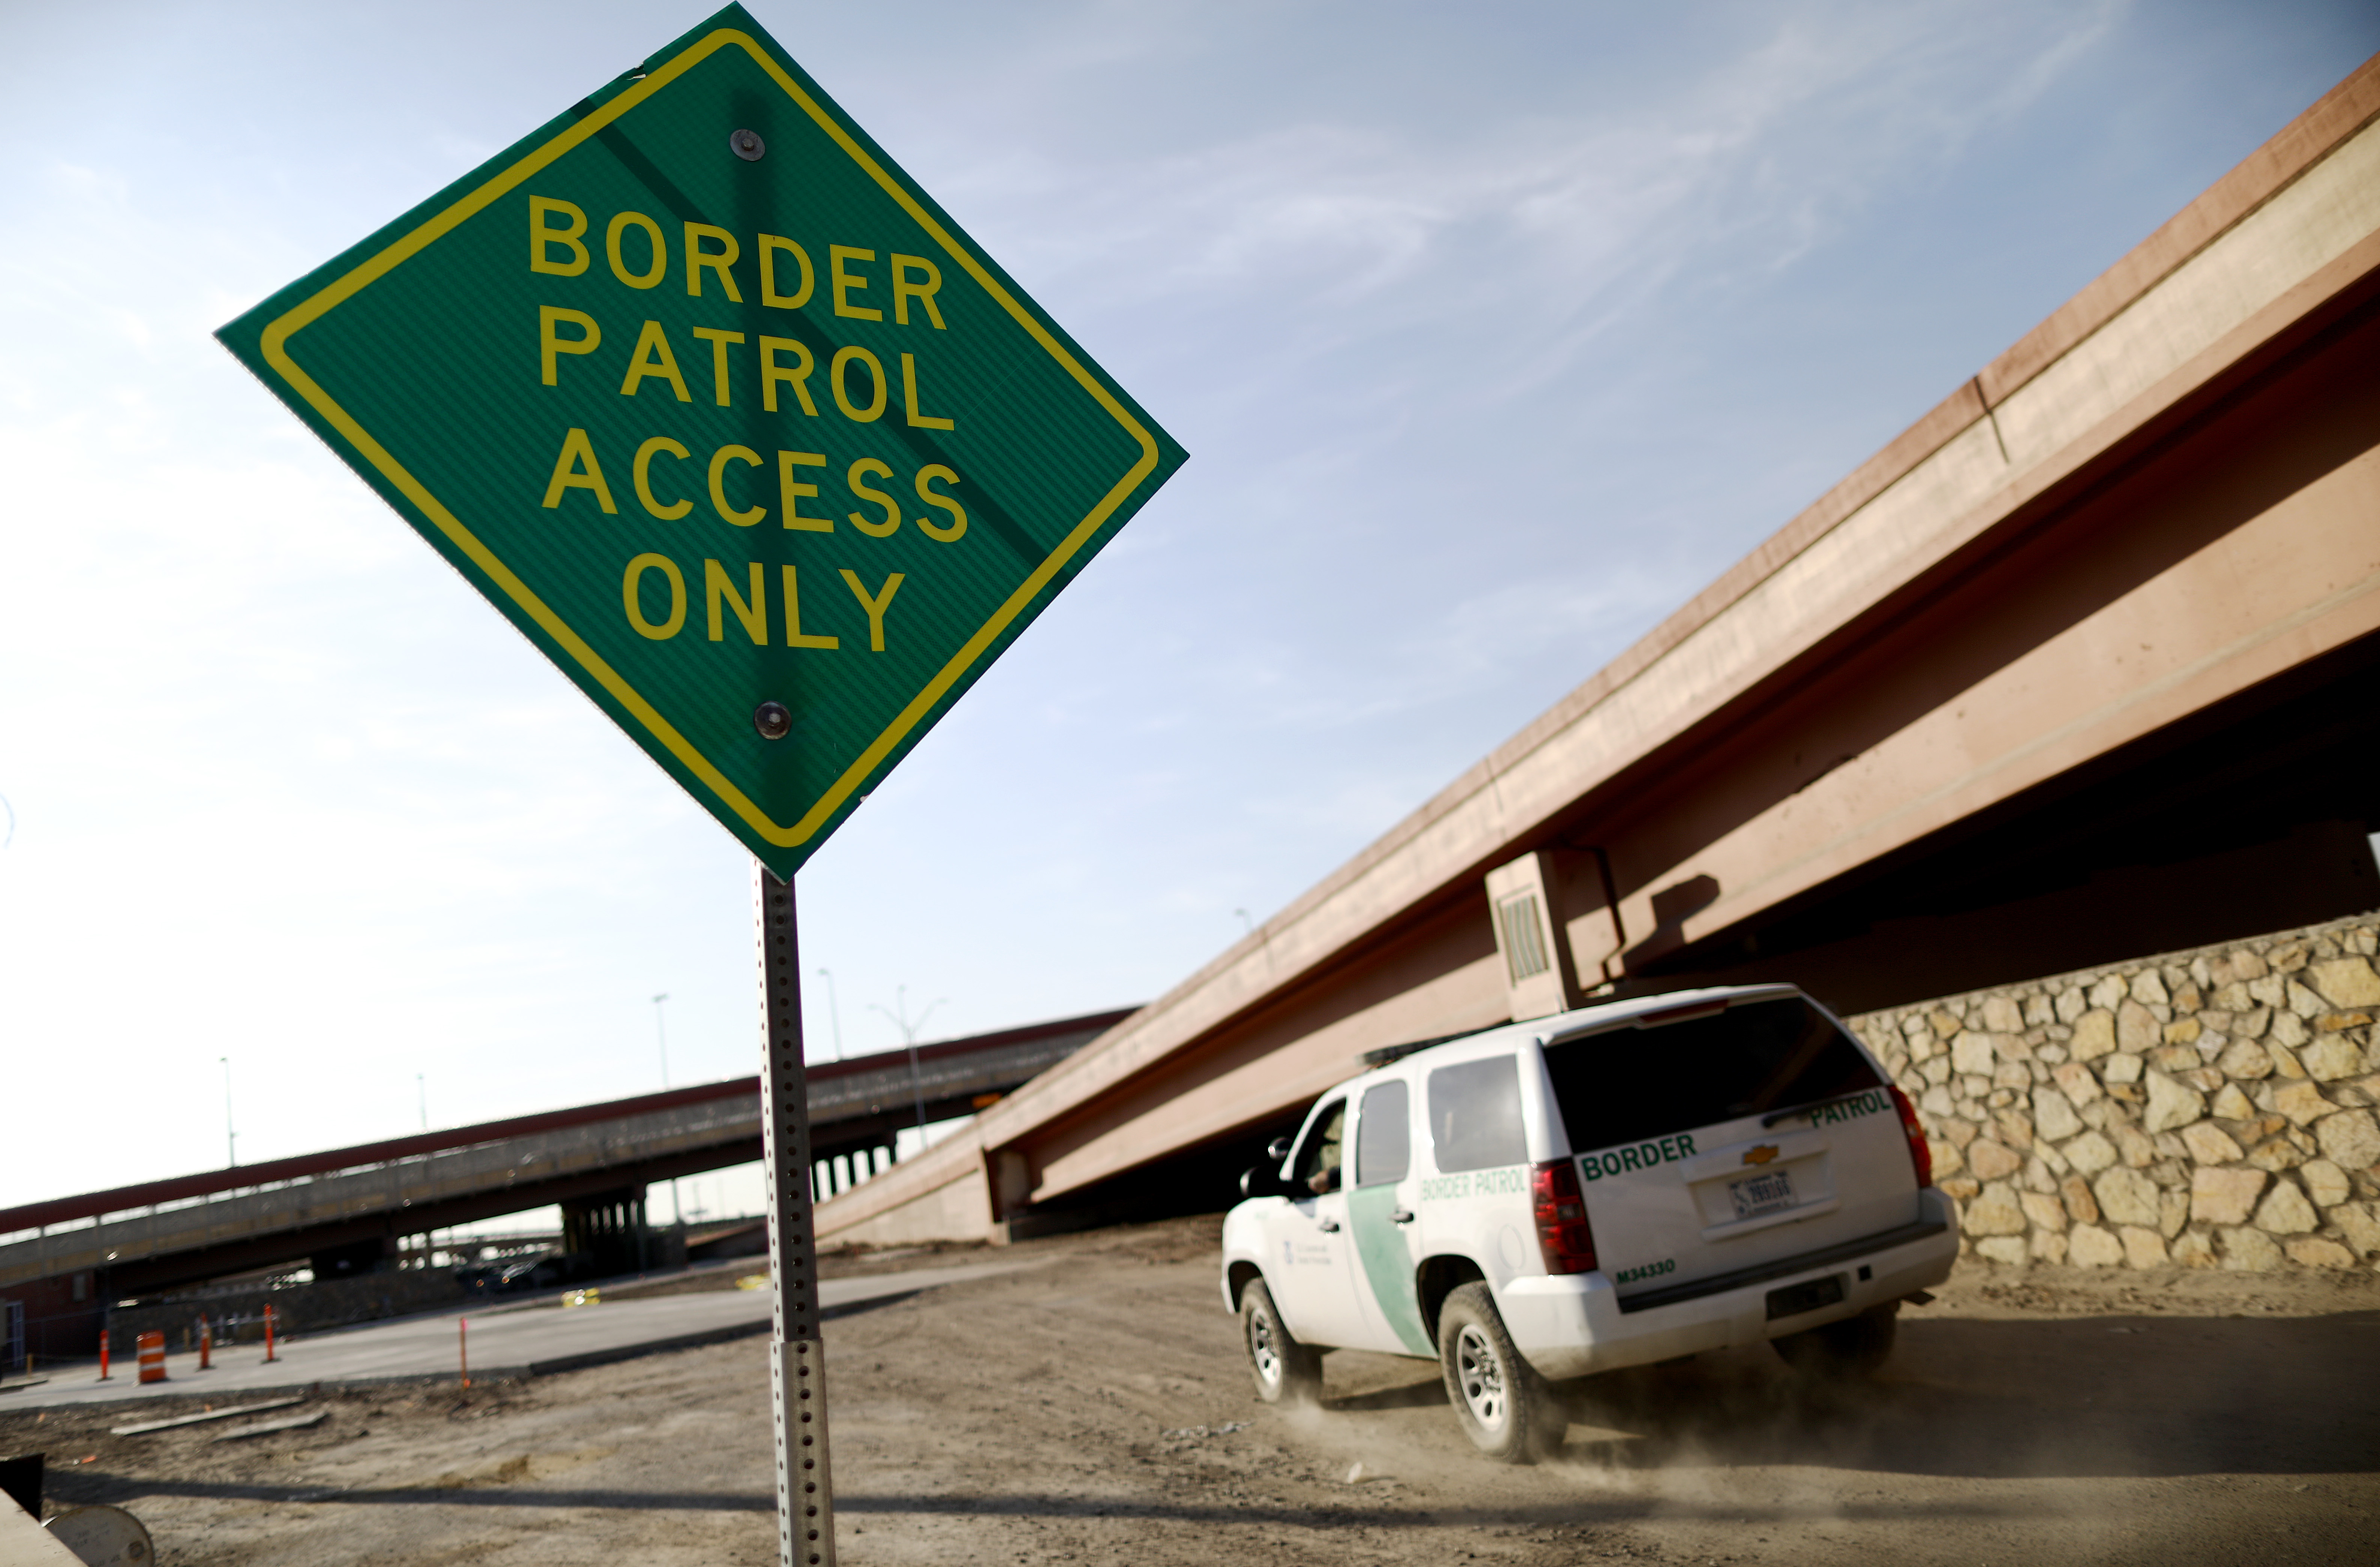 Border Patrol vehicle passes a 'Border Patrol Access Only' sign near the U.S.-Mexico border on June 26, 2019 in El Paso, Texas.